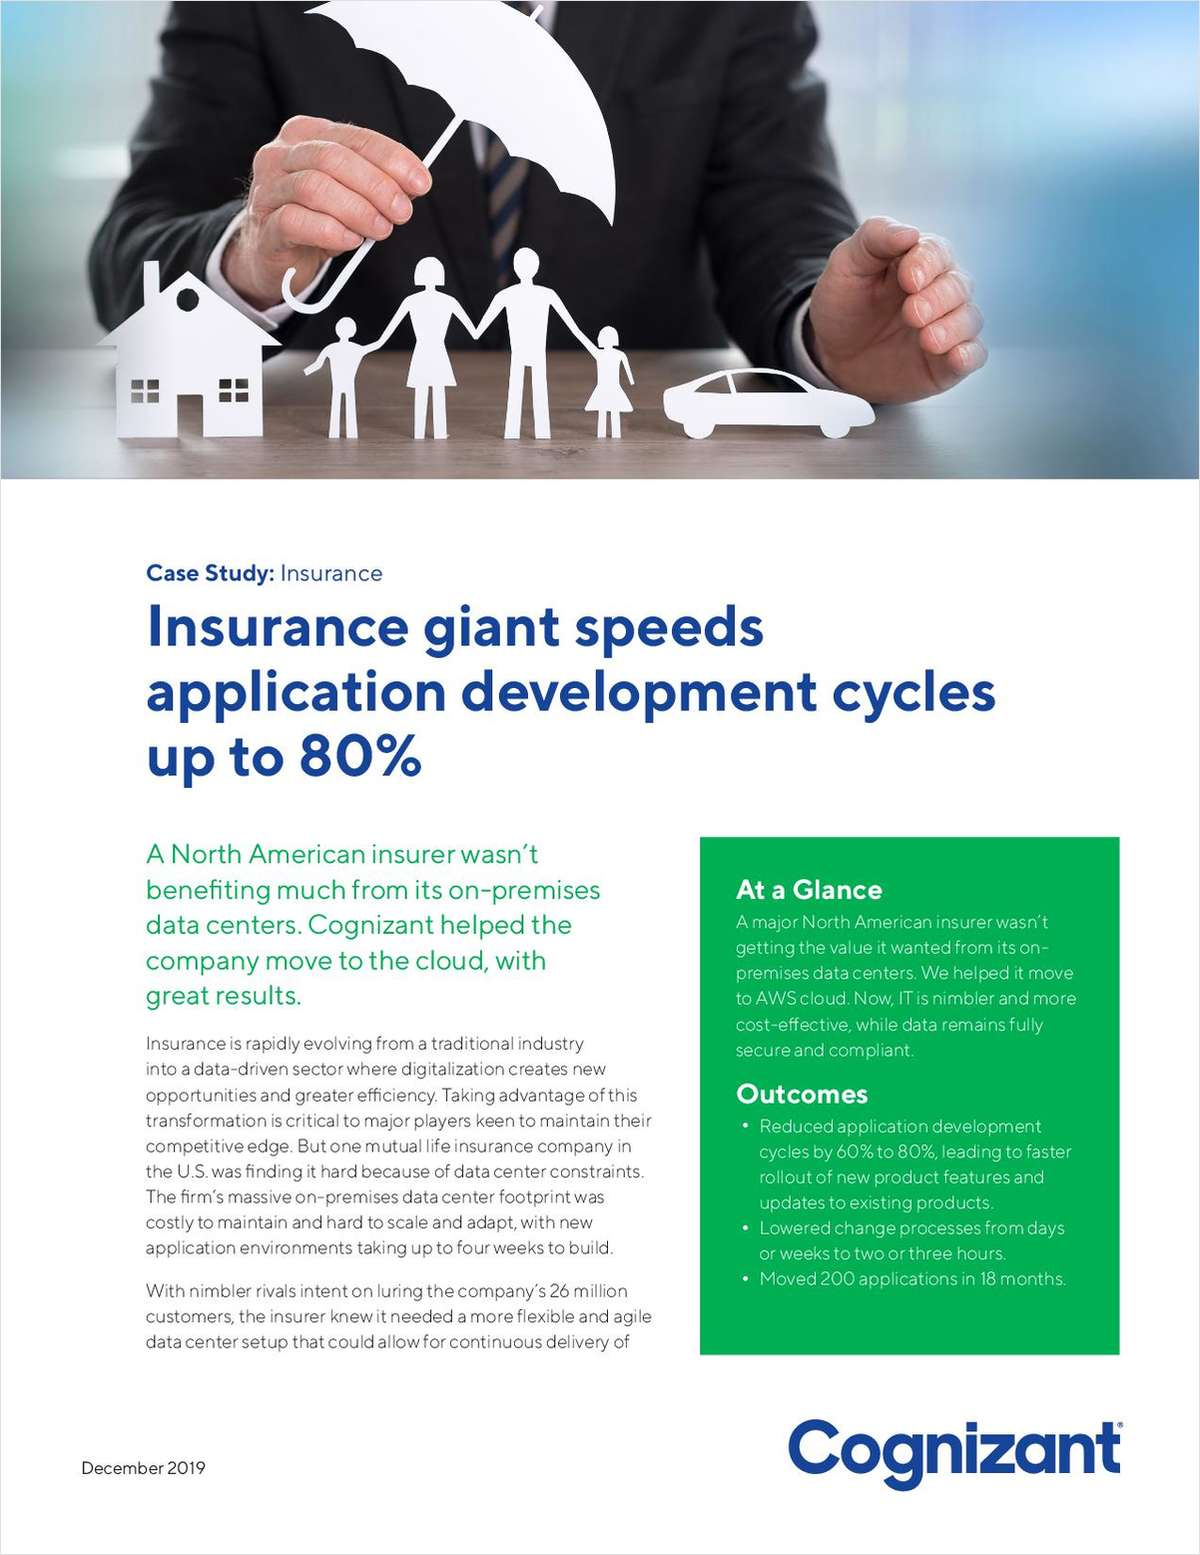 Insurance giant speeds application development cycles up to 80%